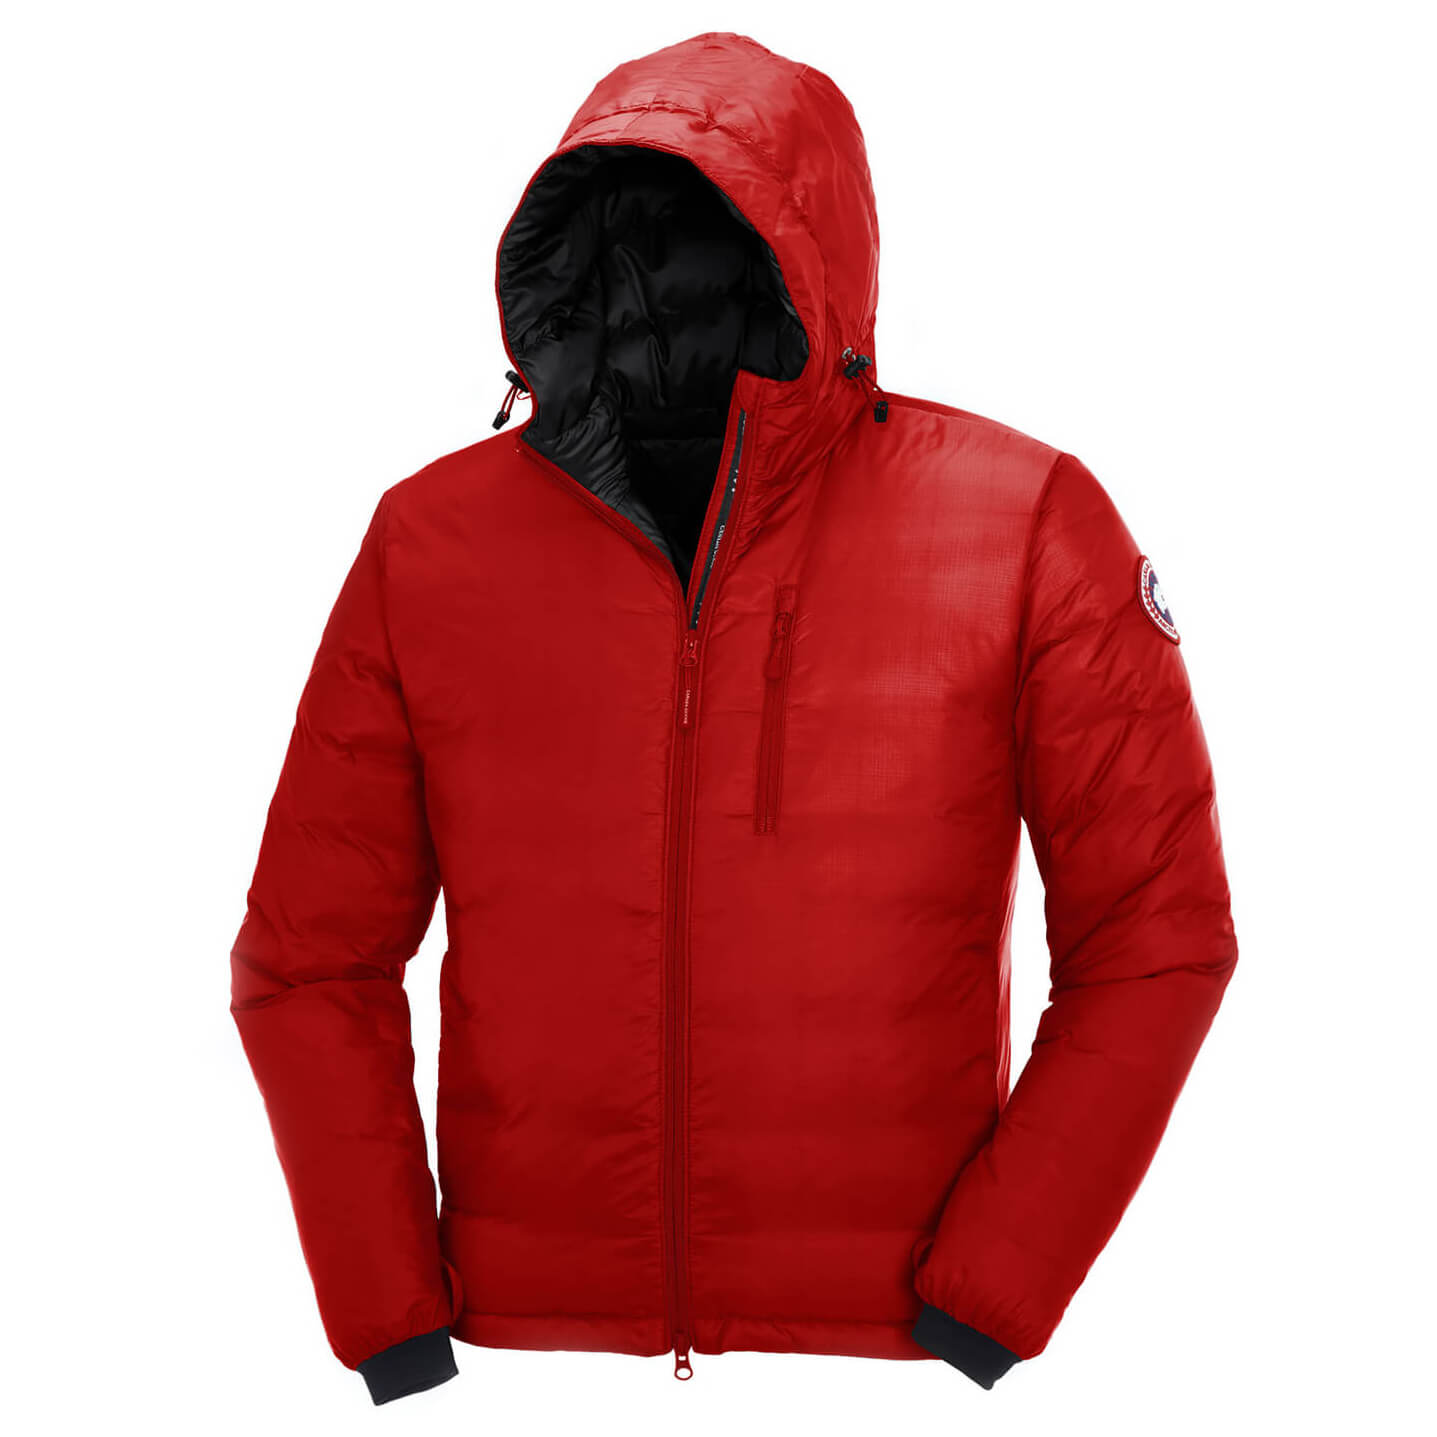 Canada Goose Lodge Down Hoody Down jacket Red Black | XXL